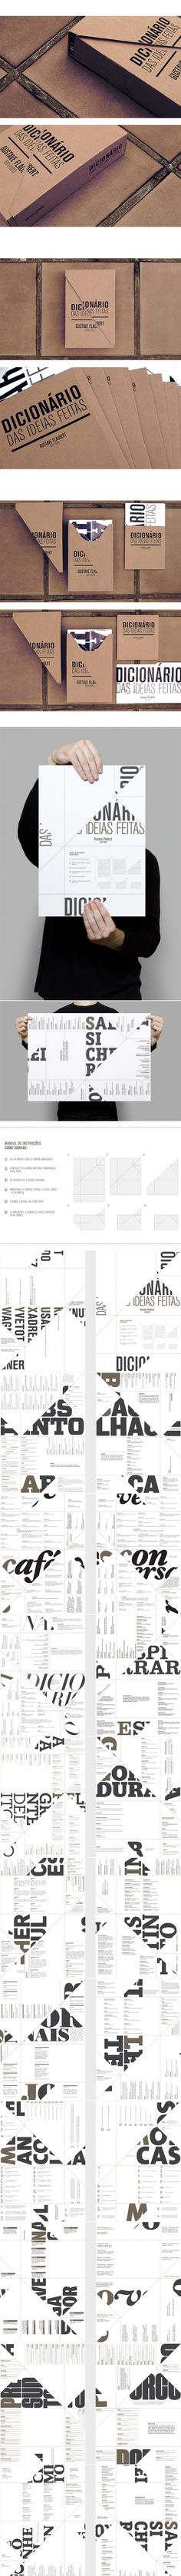 Pin by Elyssa Lyn on Graphic Design Graphic Design Branding, Brochure Design, Packaging Design, Print Layout, Layout Design, Print Design, Editorial Layout, Editorial Design, Typography Inspiration